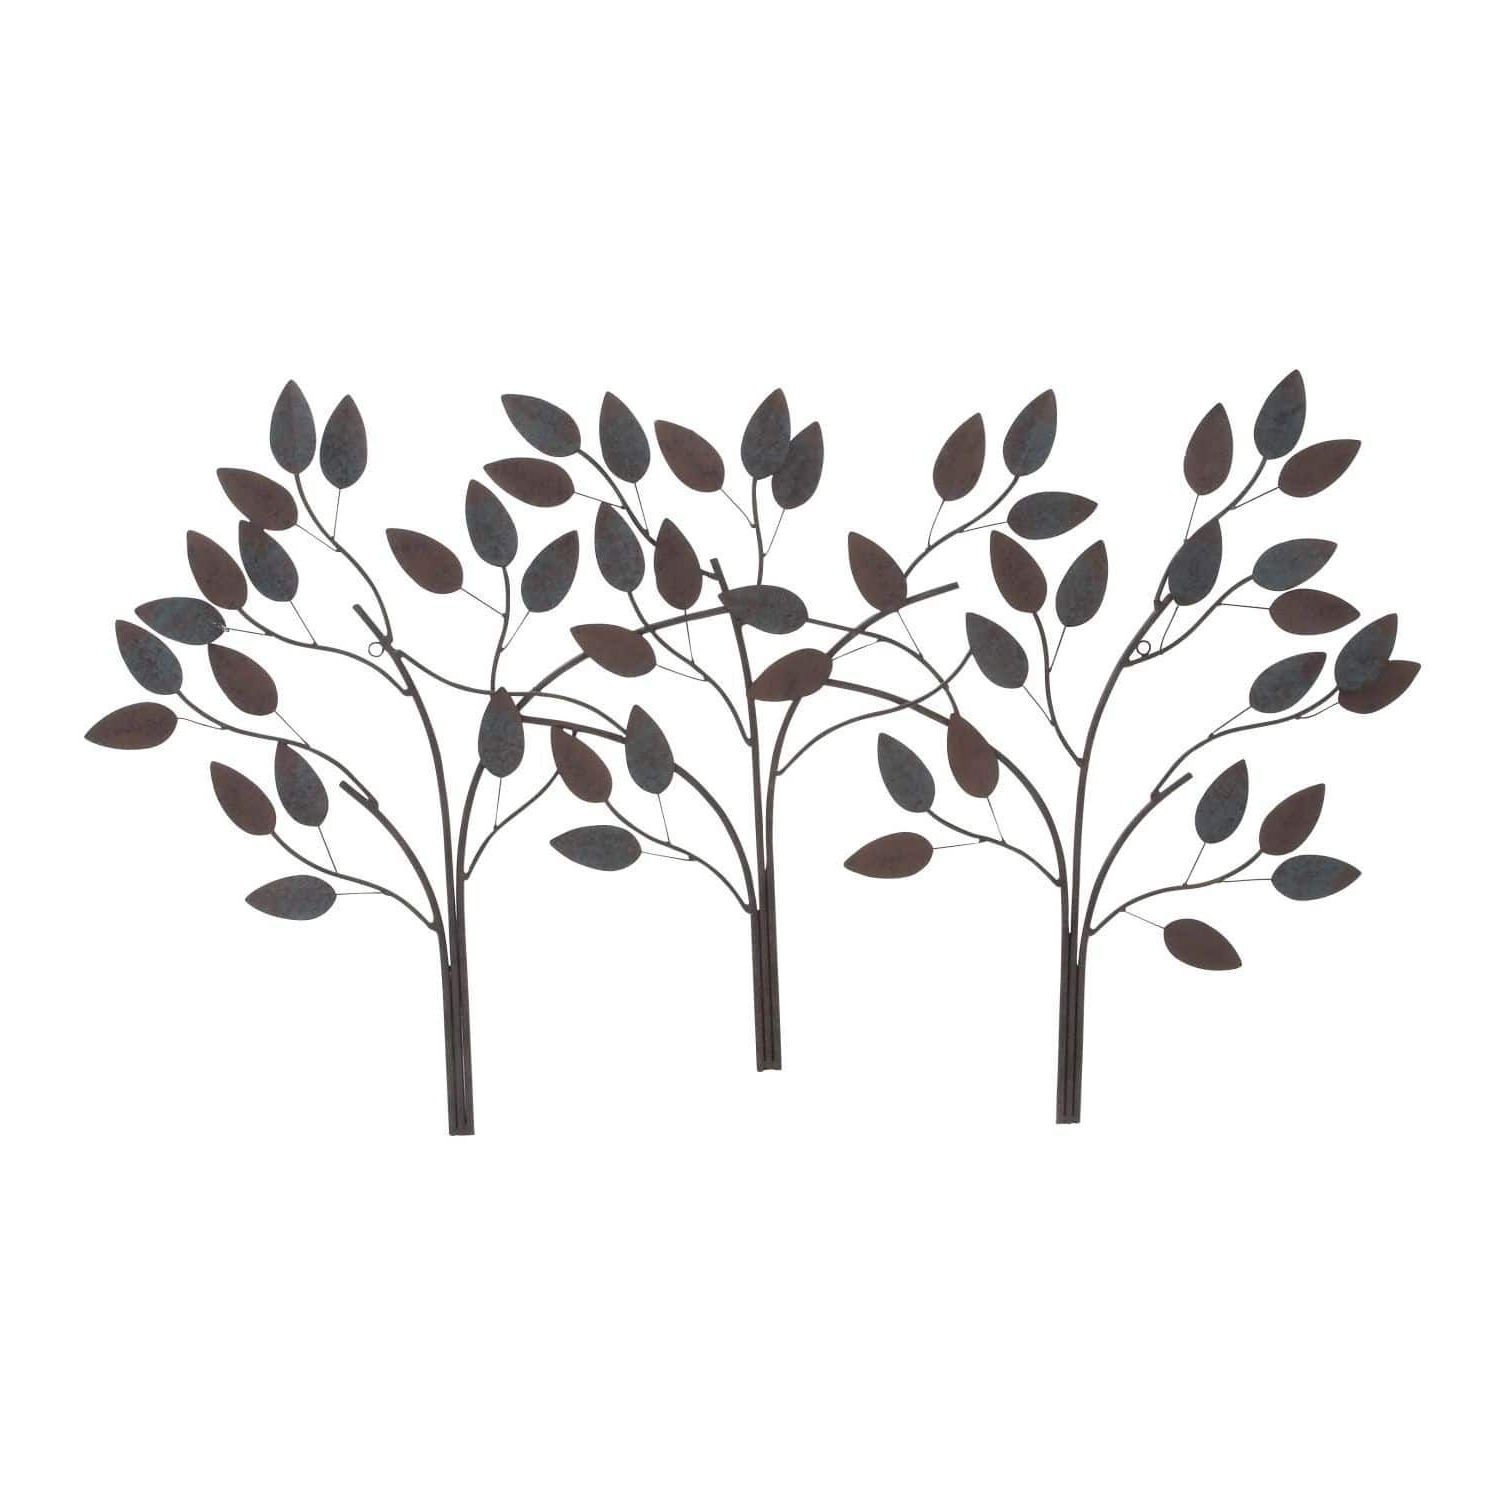 Most Recent Studio 350 Metal Leaf Wall Decor 48 Inches Wide, 27 Inches High With Regard To Desford Leaf Wall Decor By Charlton Home (View 12 of 20)